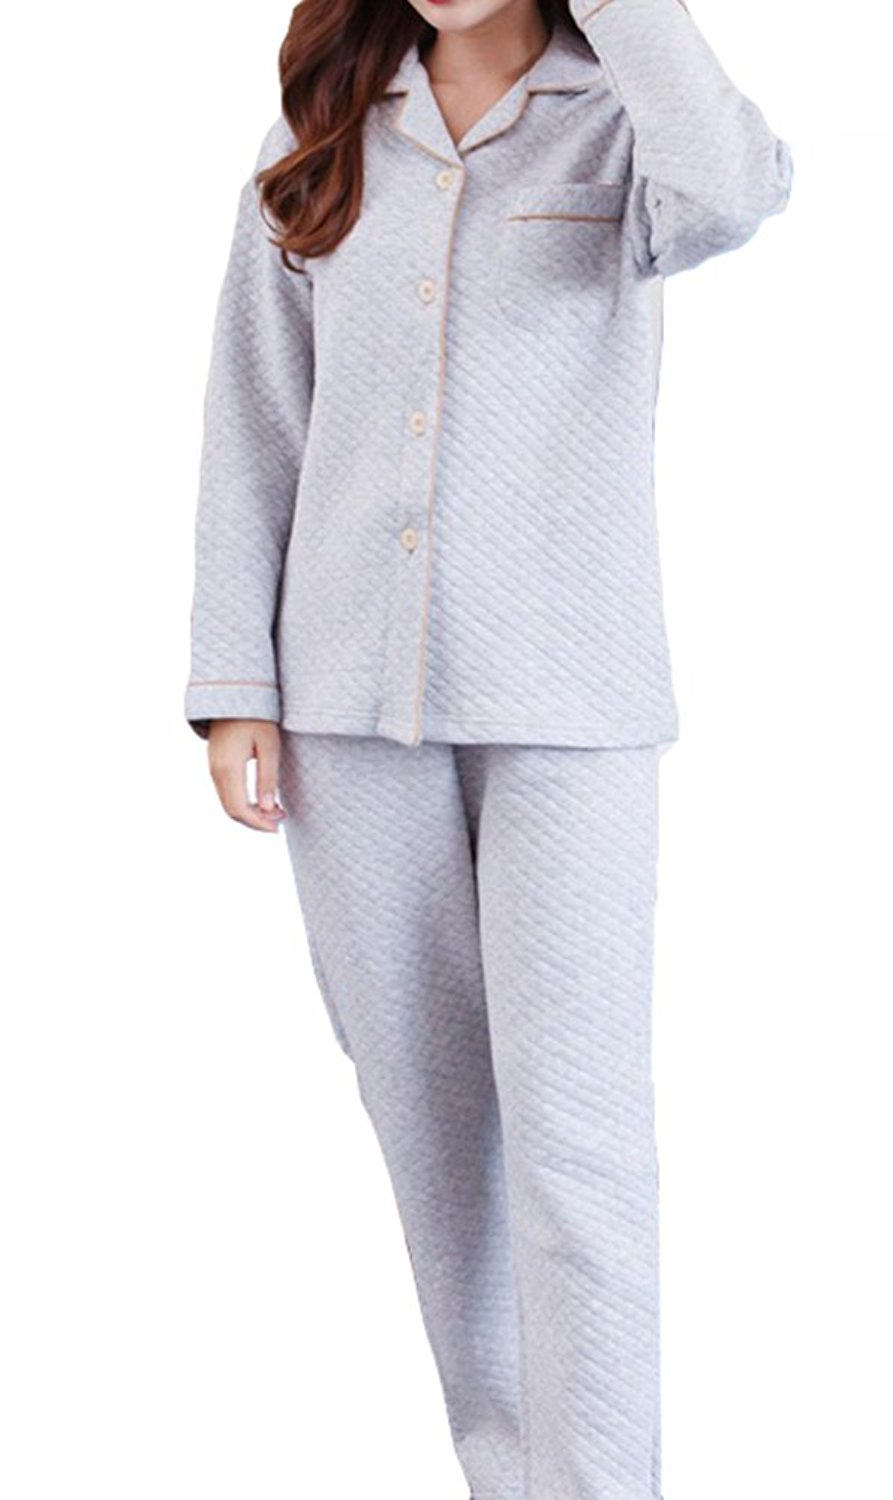 f3c74001d2 Get Quotations · AGOWOO Womens Mens Couples Matching Quilted Cotton Pajamas  Set with Pants